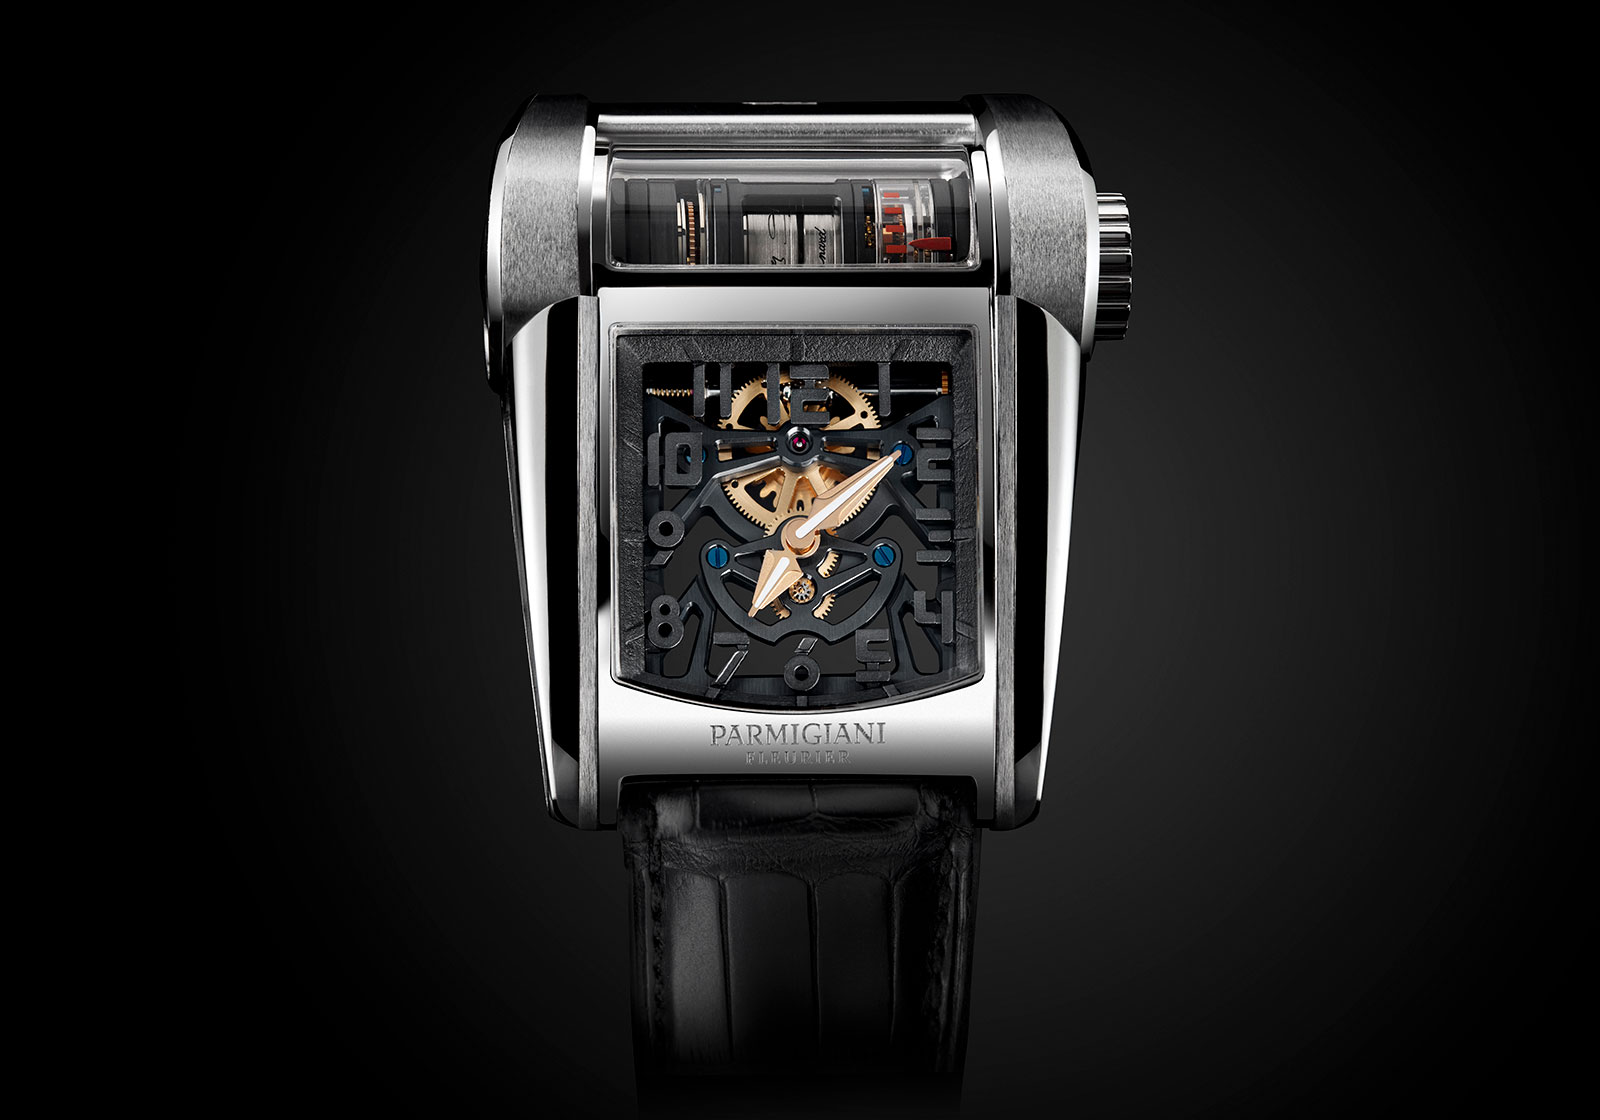 Parmigiani Bugatti Type 390 Chiron watch 6